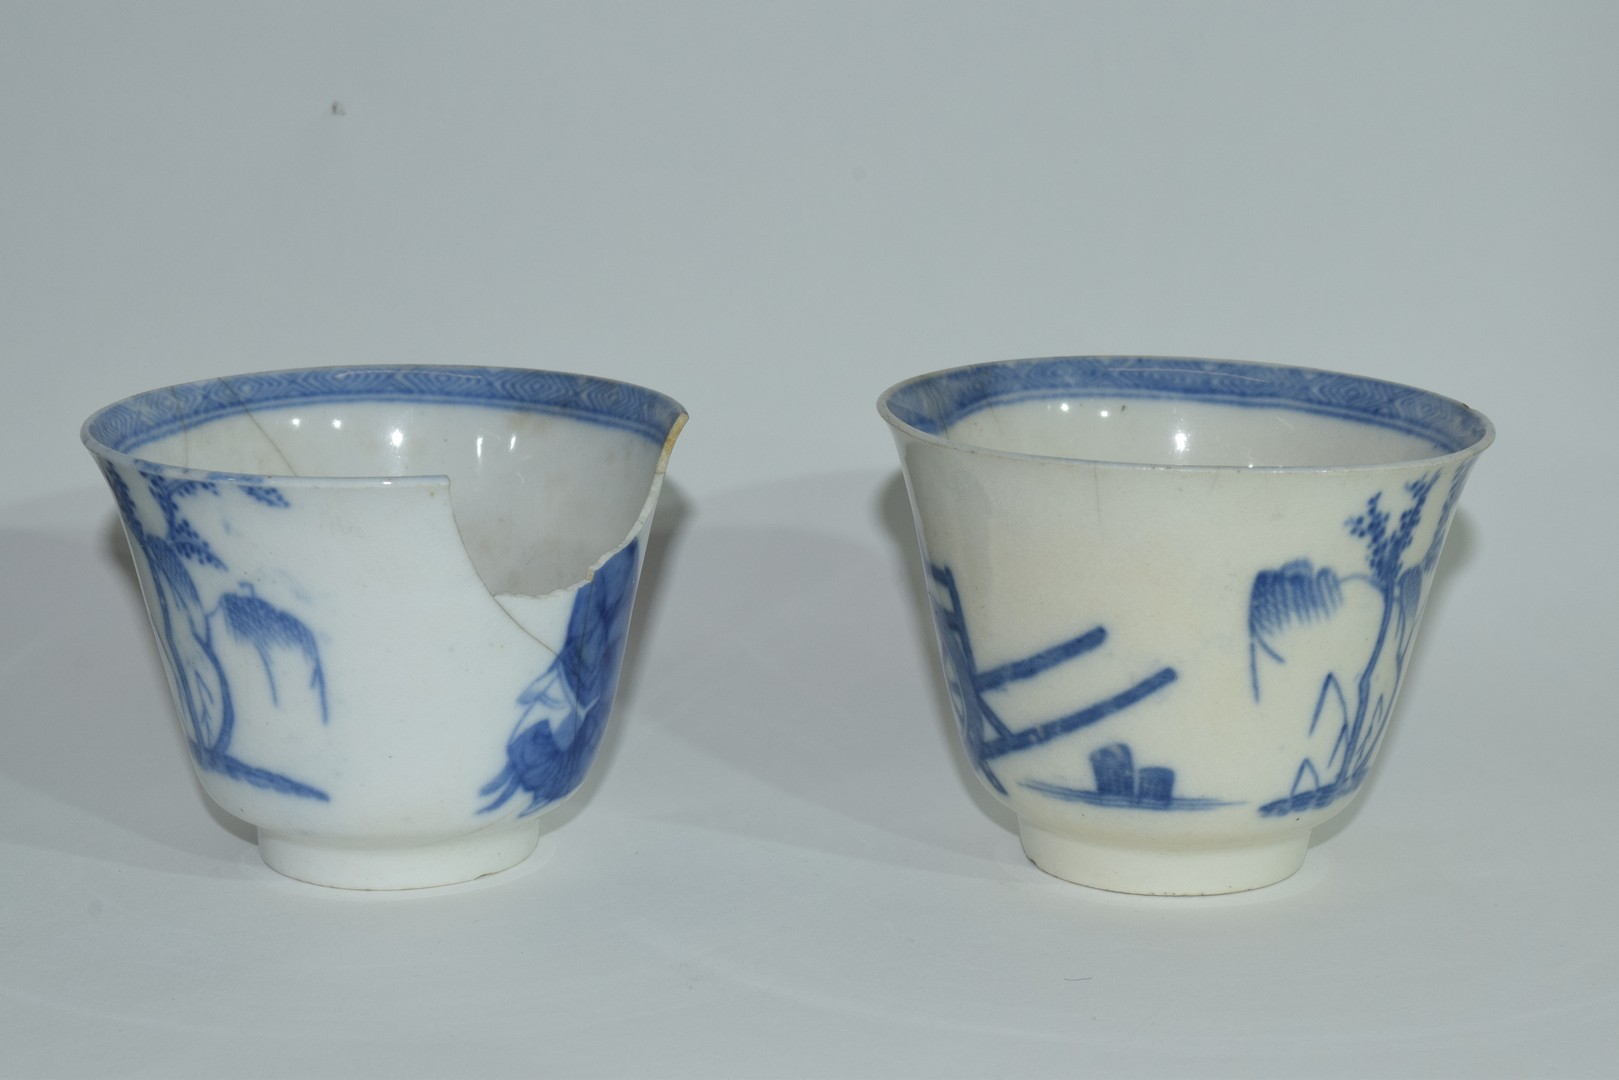 Group of Chinese export porcelain plates - Image 4 of 15